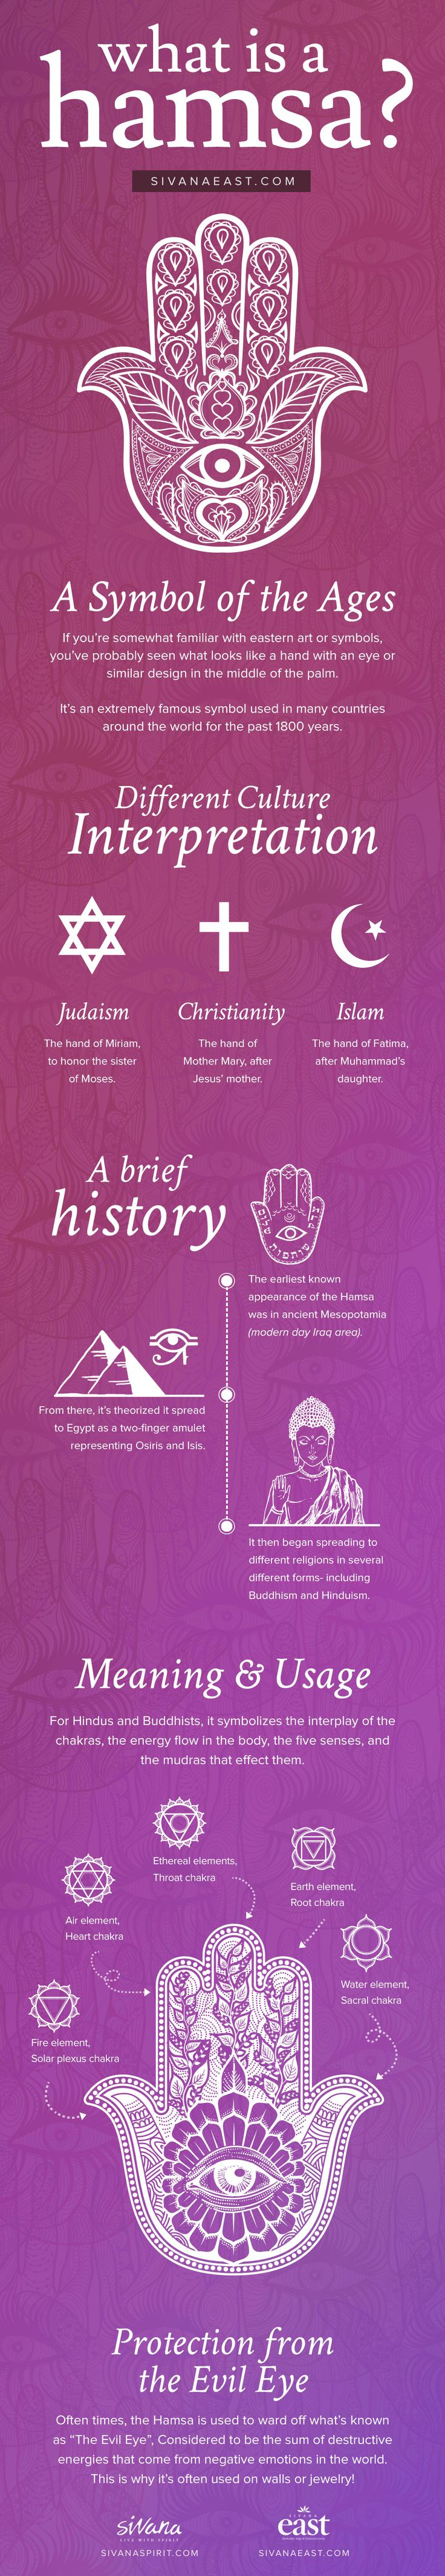 What Is A Hamsa? (Infographic) So nice to see this! I've seen so many misinterpretations since it has become 'fashionable'. People should learn what it means and it's importance.